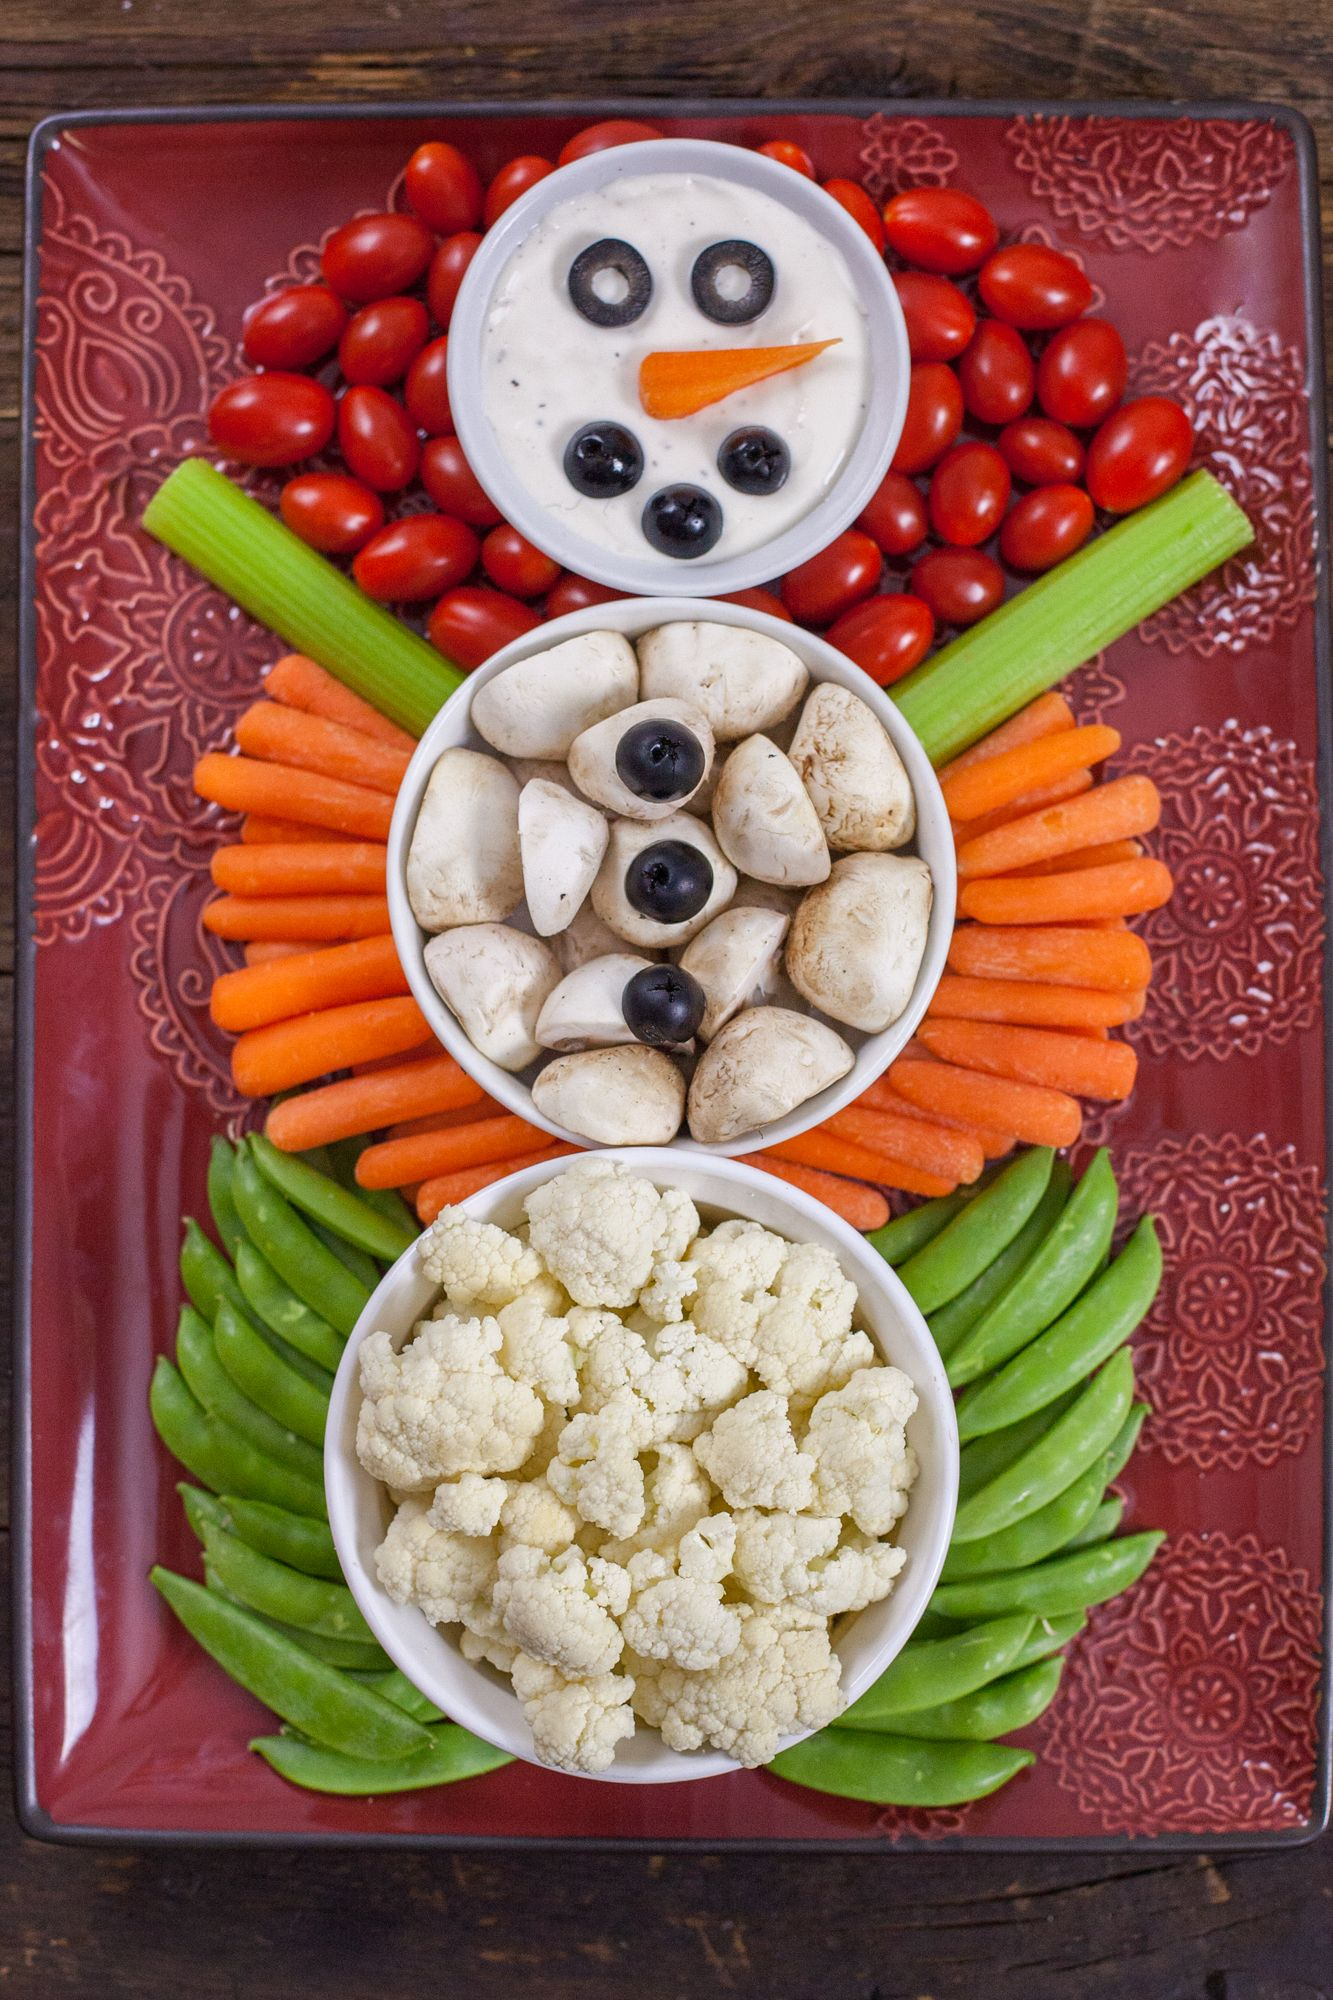 This Christmas Veggie Tray Snowman is easy enough for kids